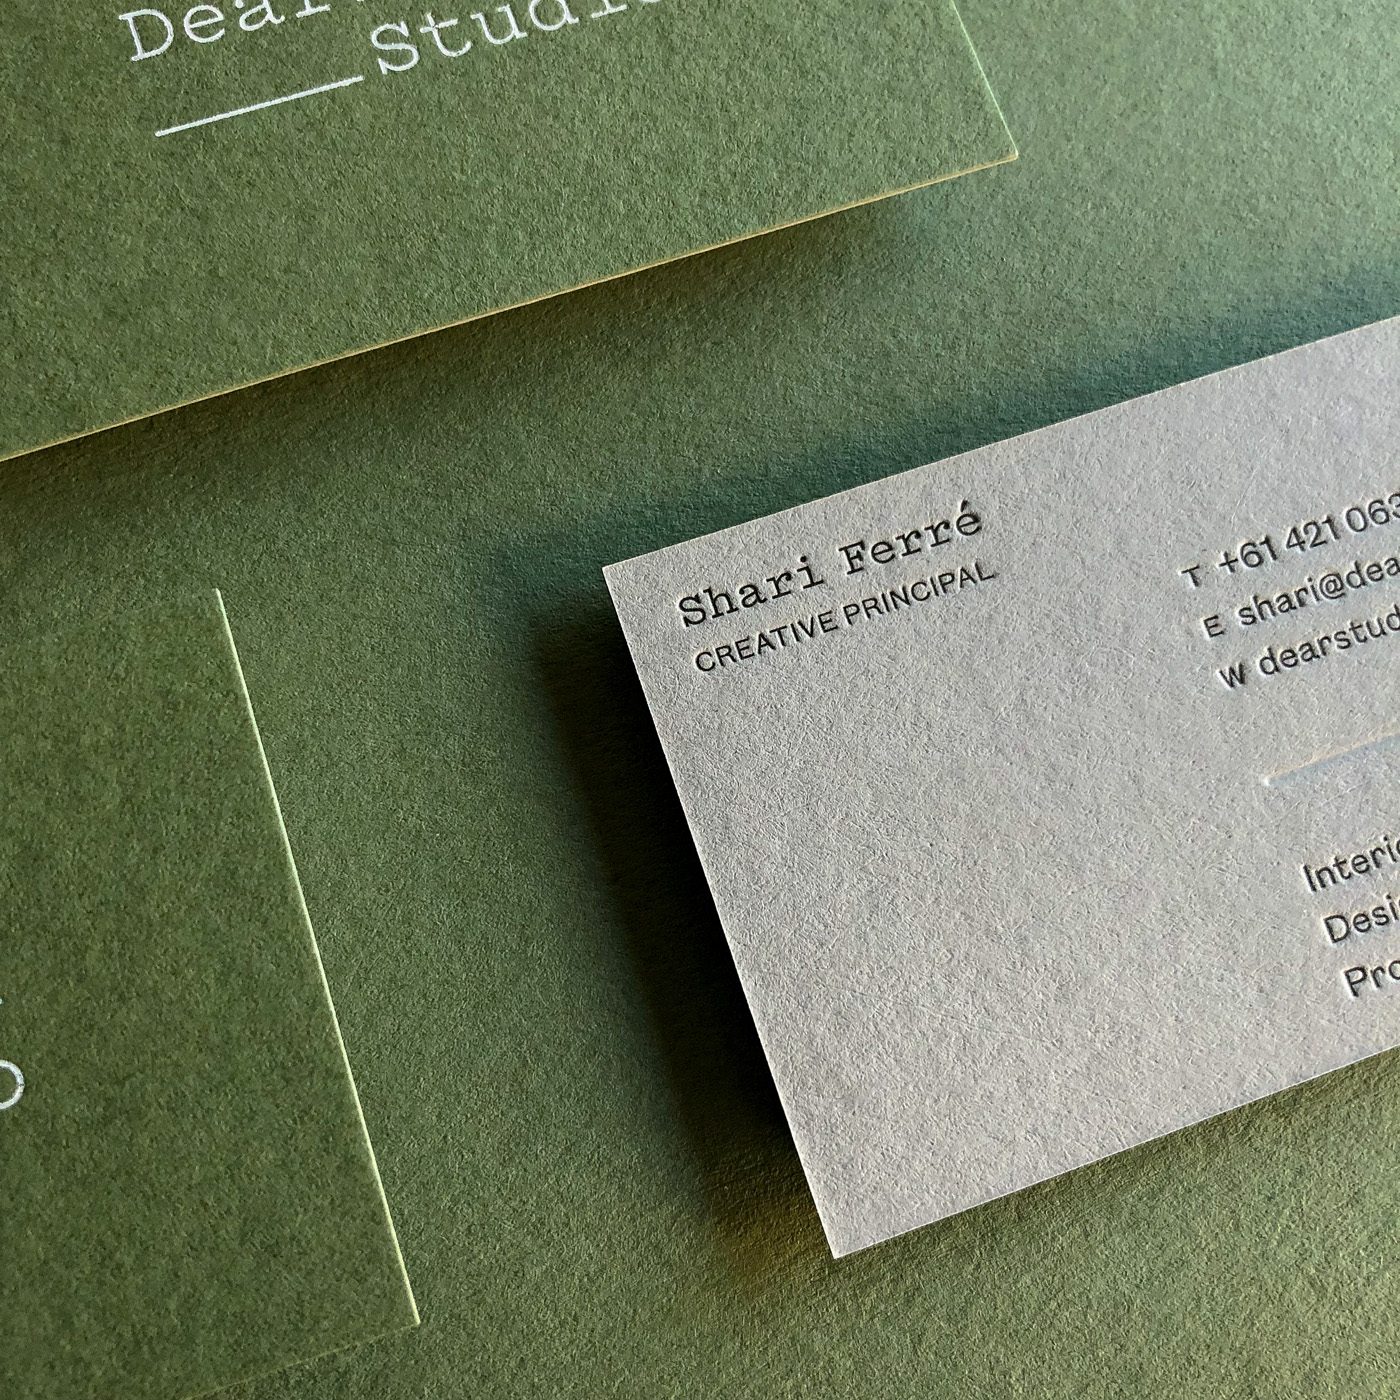 Duplex letterpress blind white foil business cards for Dear Studio on  Colorplan Mid Green and Real Grey 1